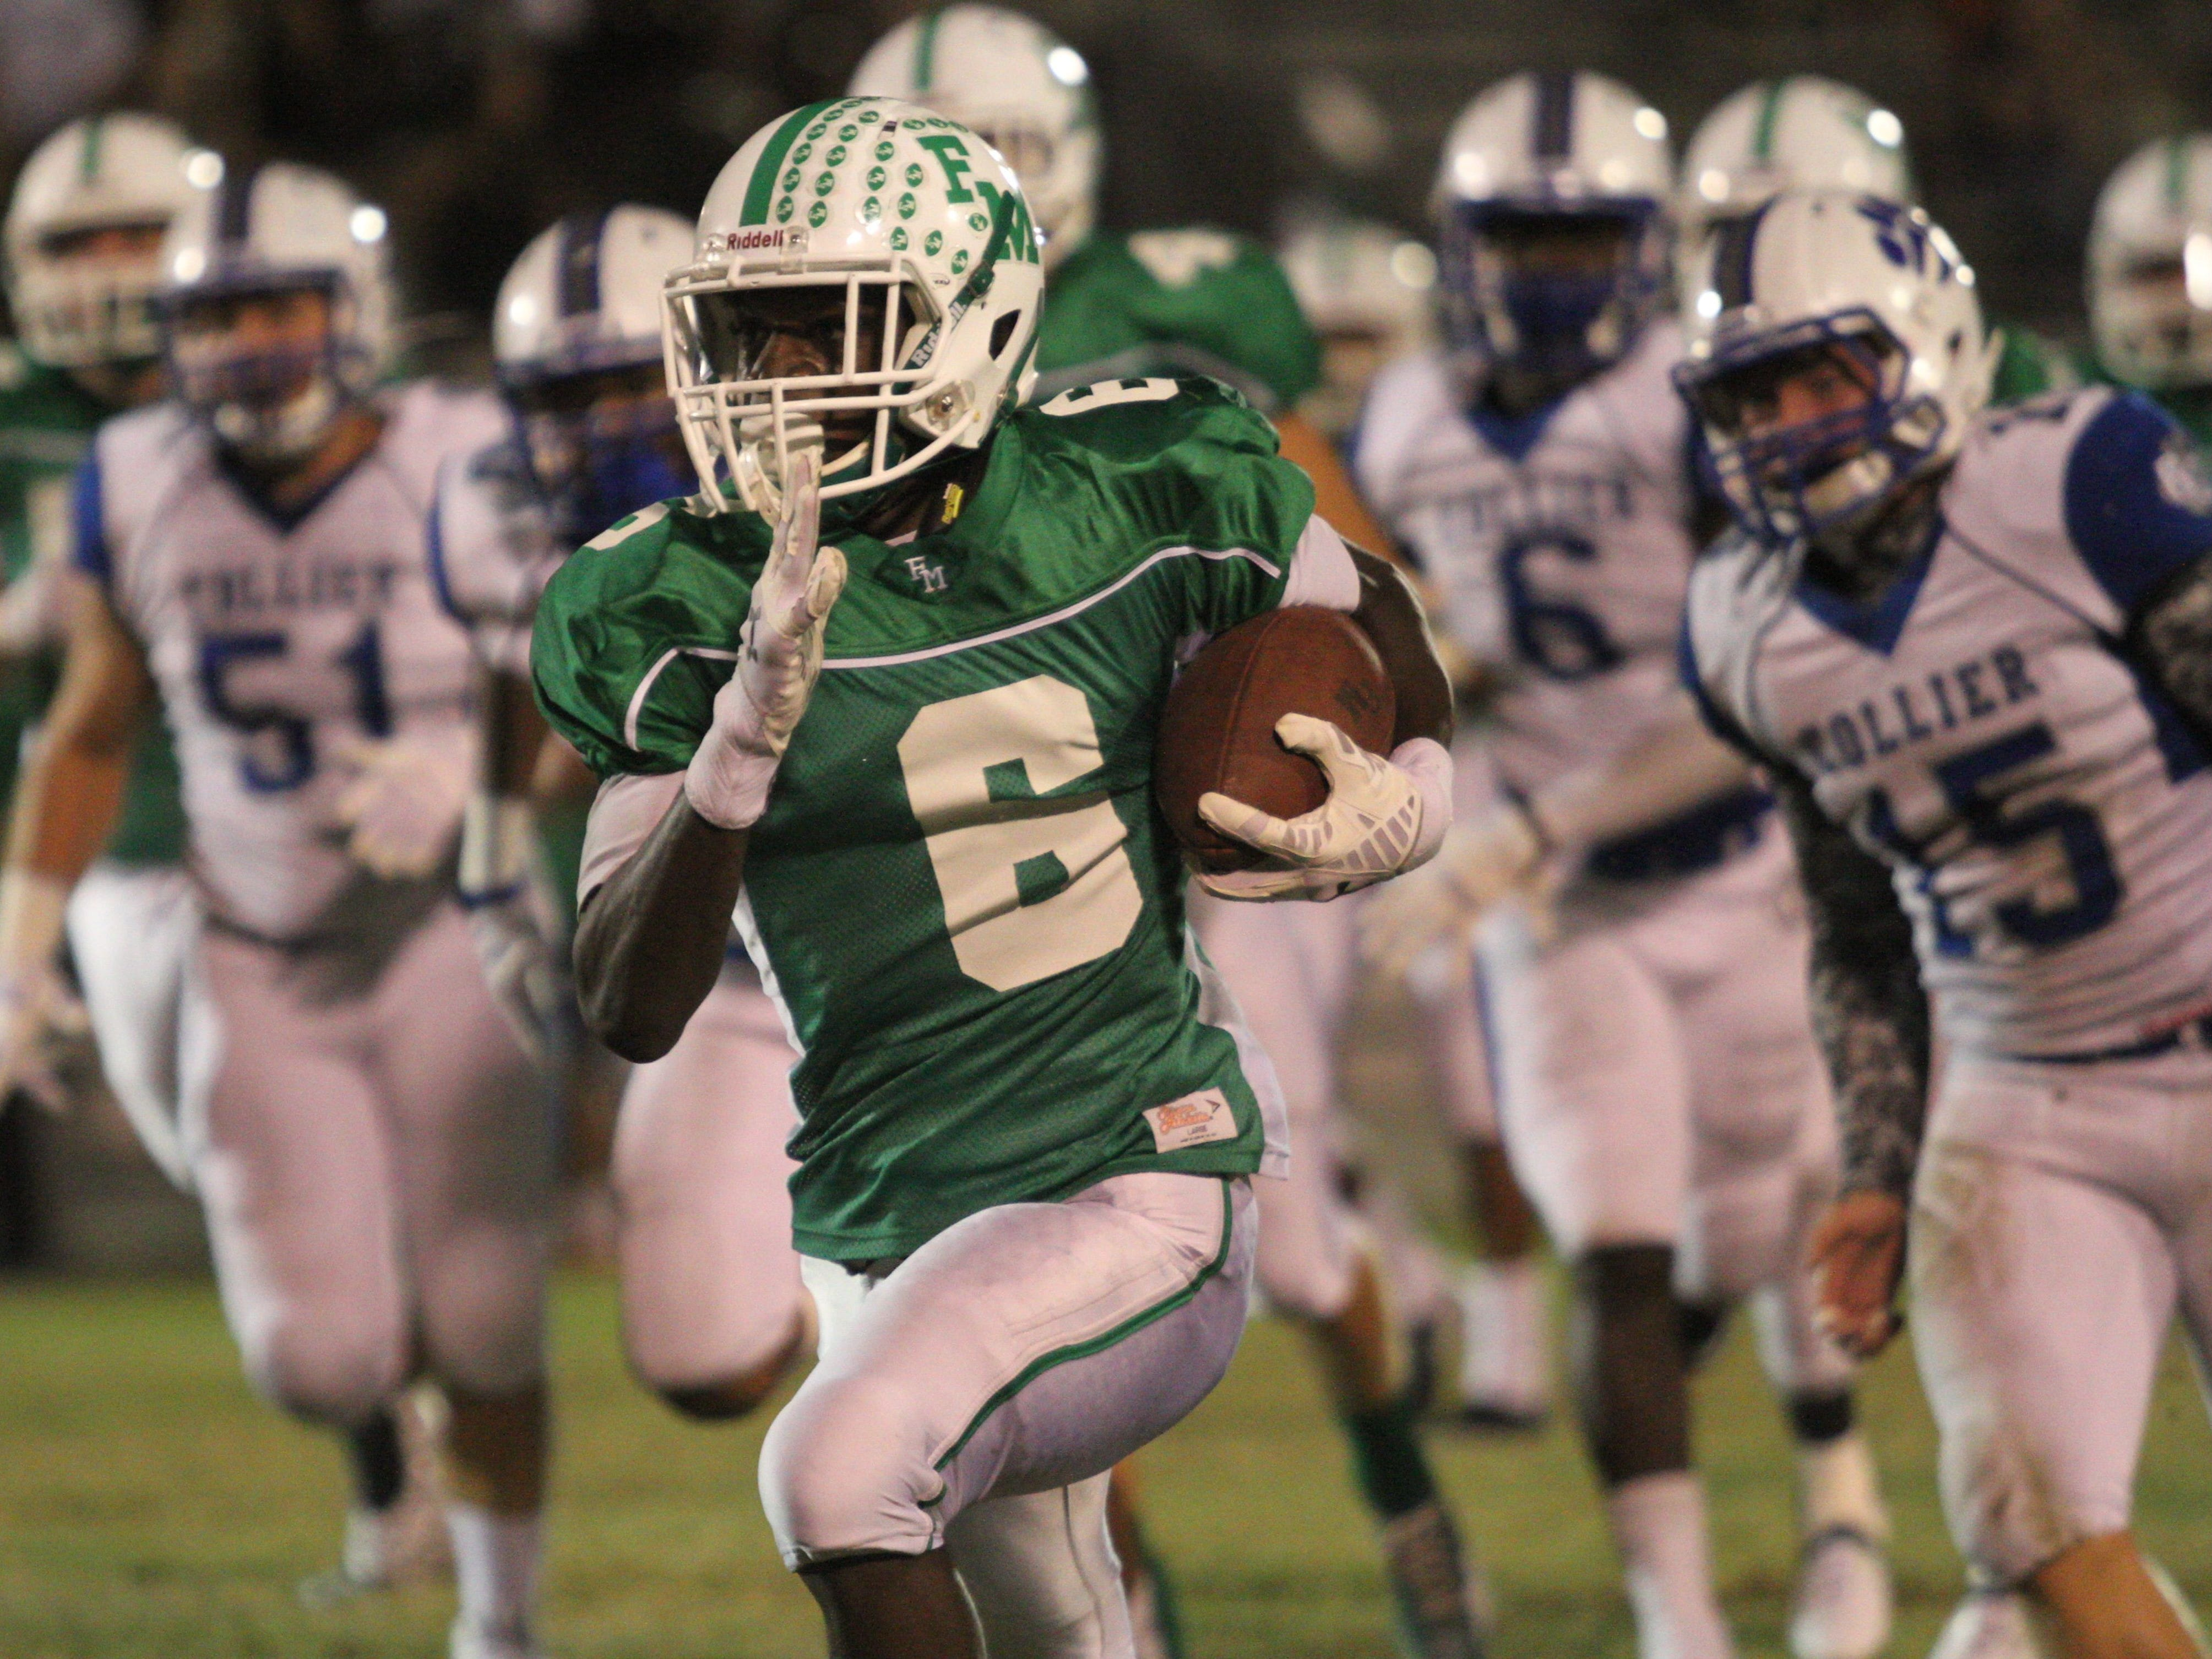 Fort Myers, which will have a young team this season, is counting on junior Darrian Felix (6) to be its next big offensive threat.